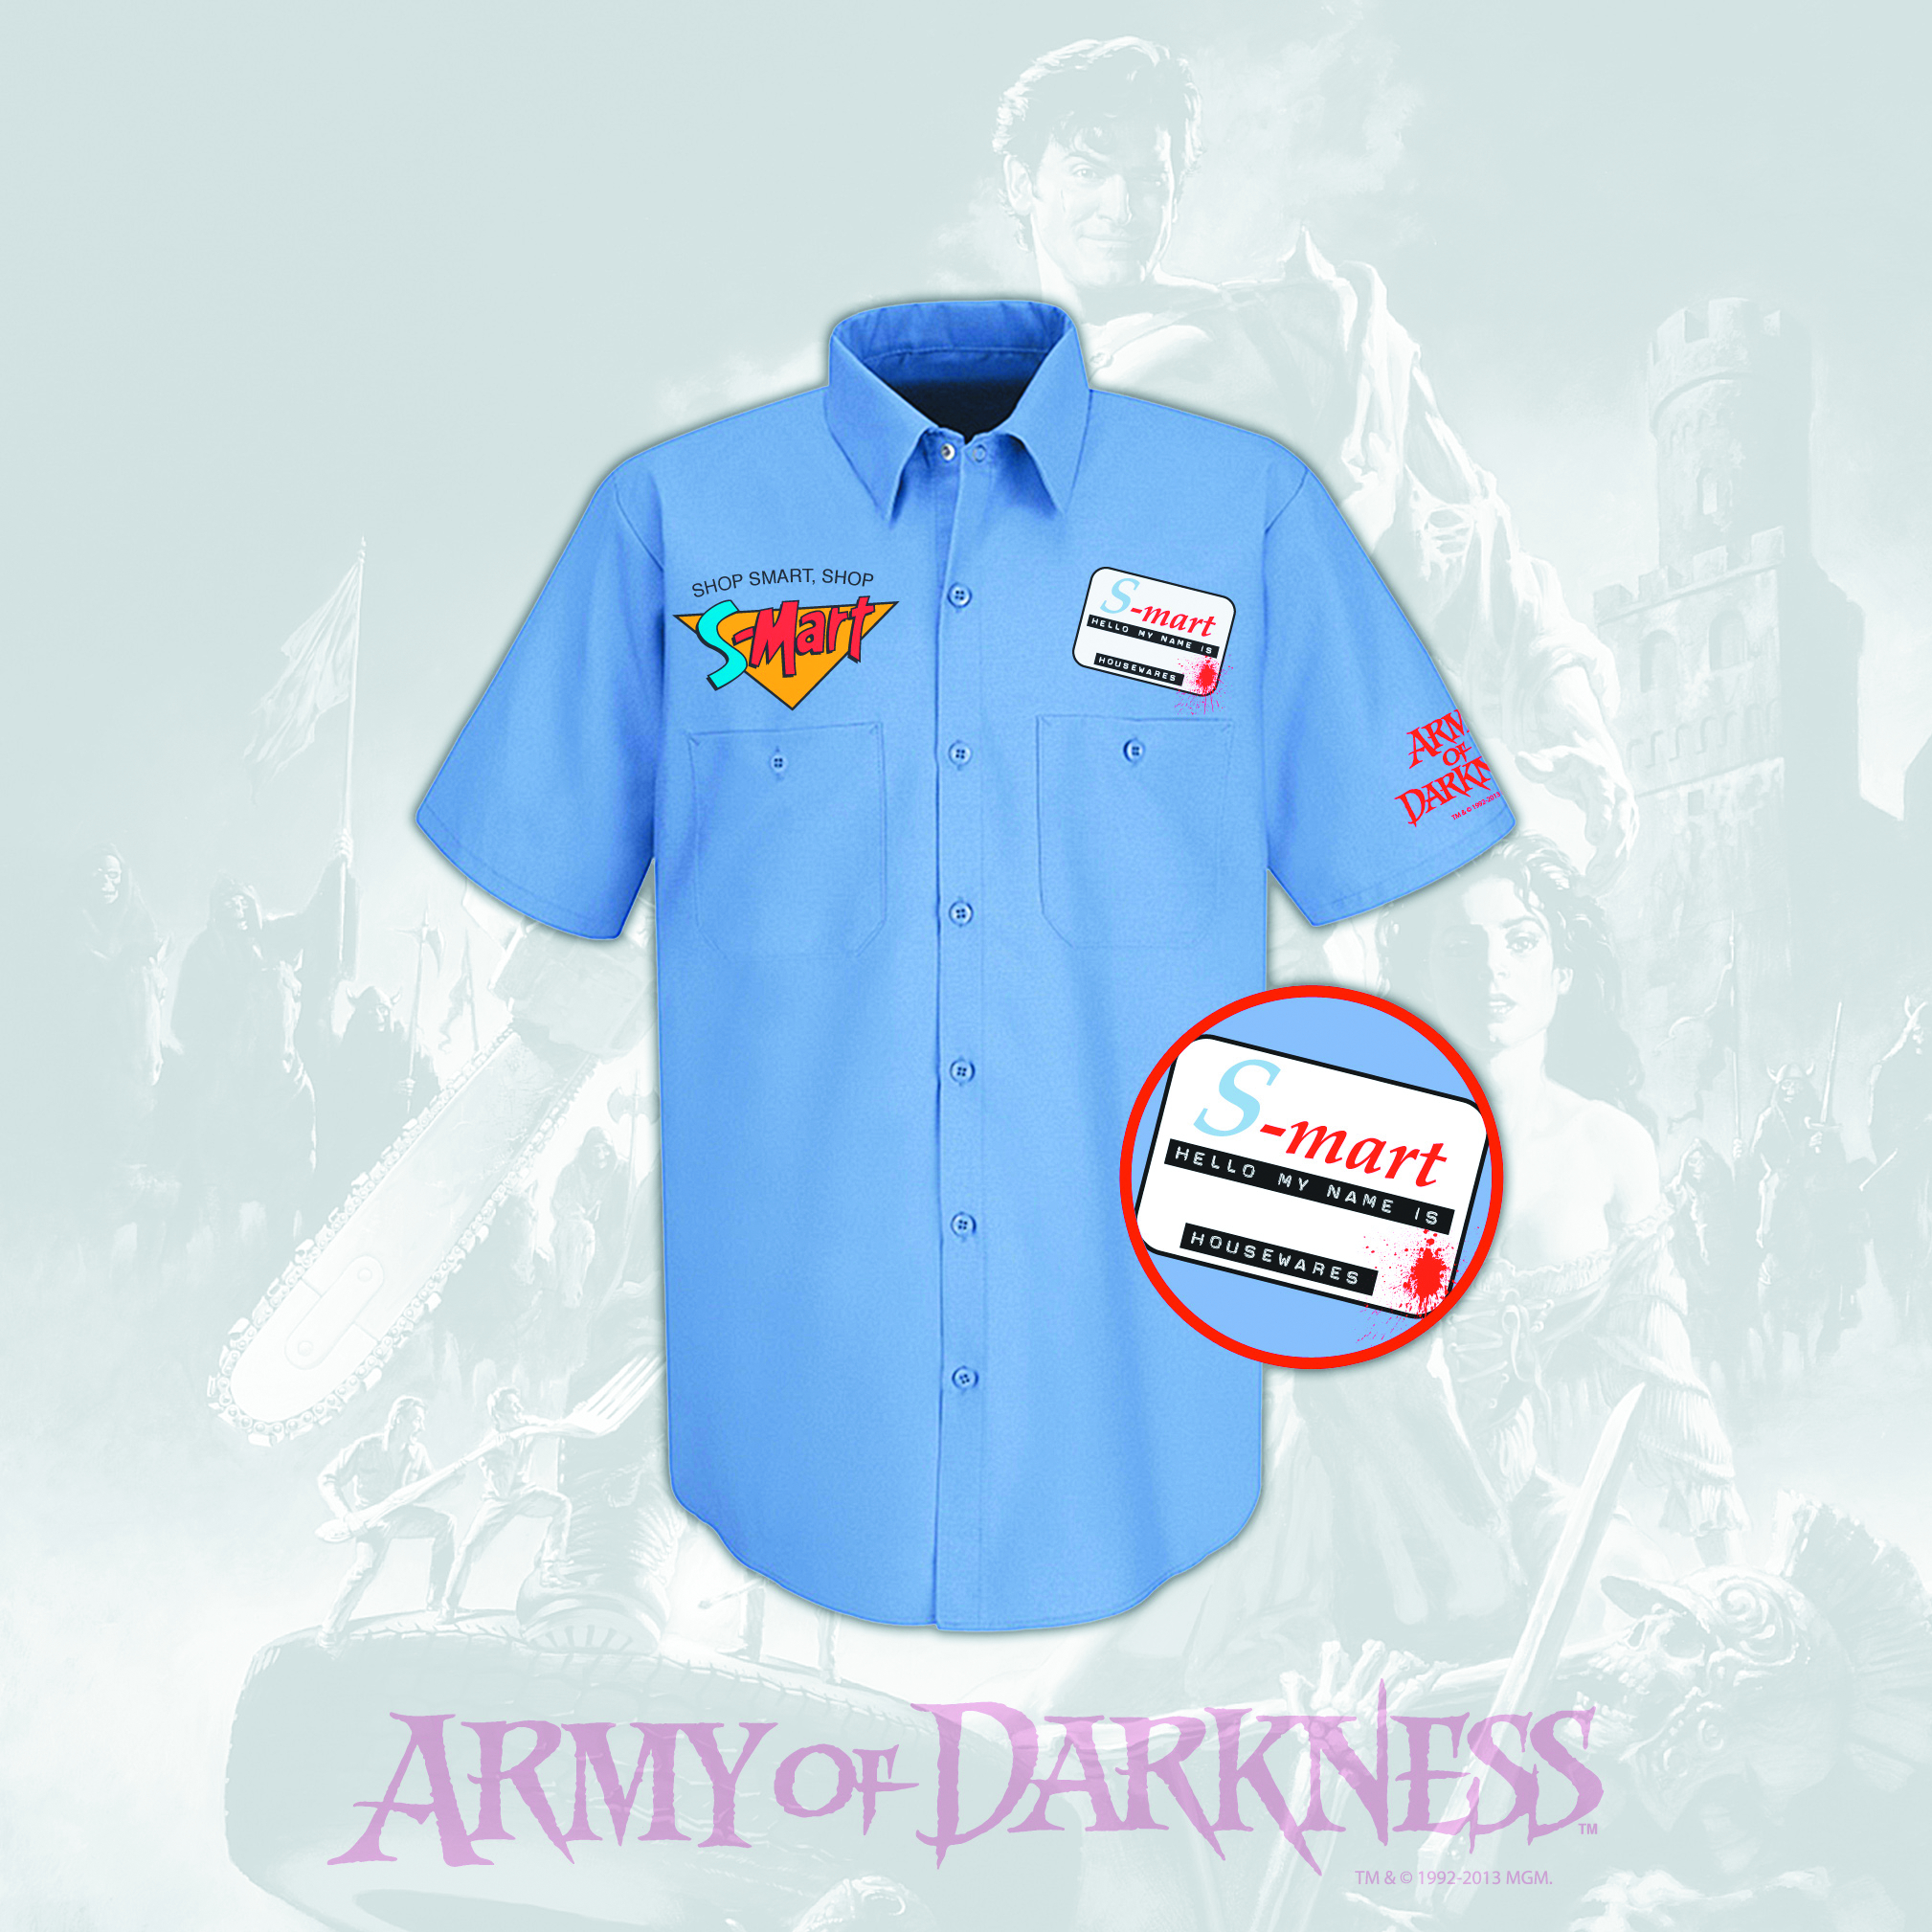 ARMY OF DARKNESS S-MART PX WORK SHIRT LG